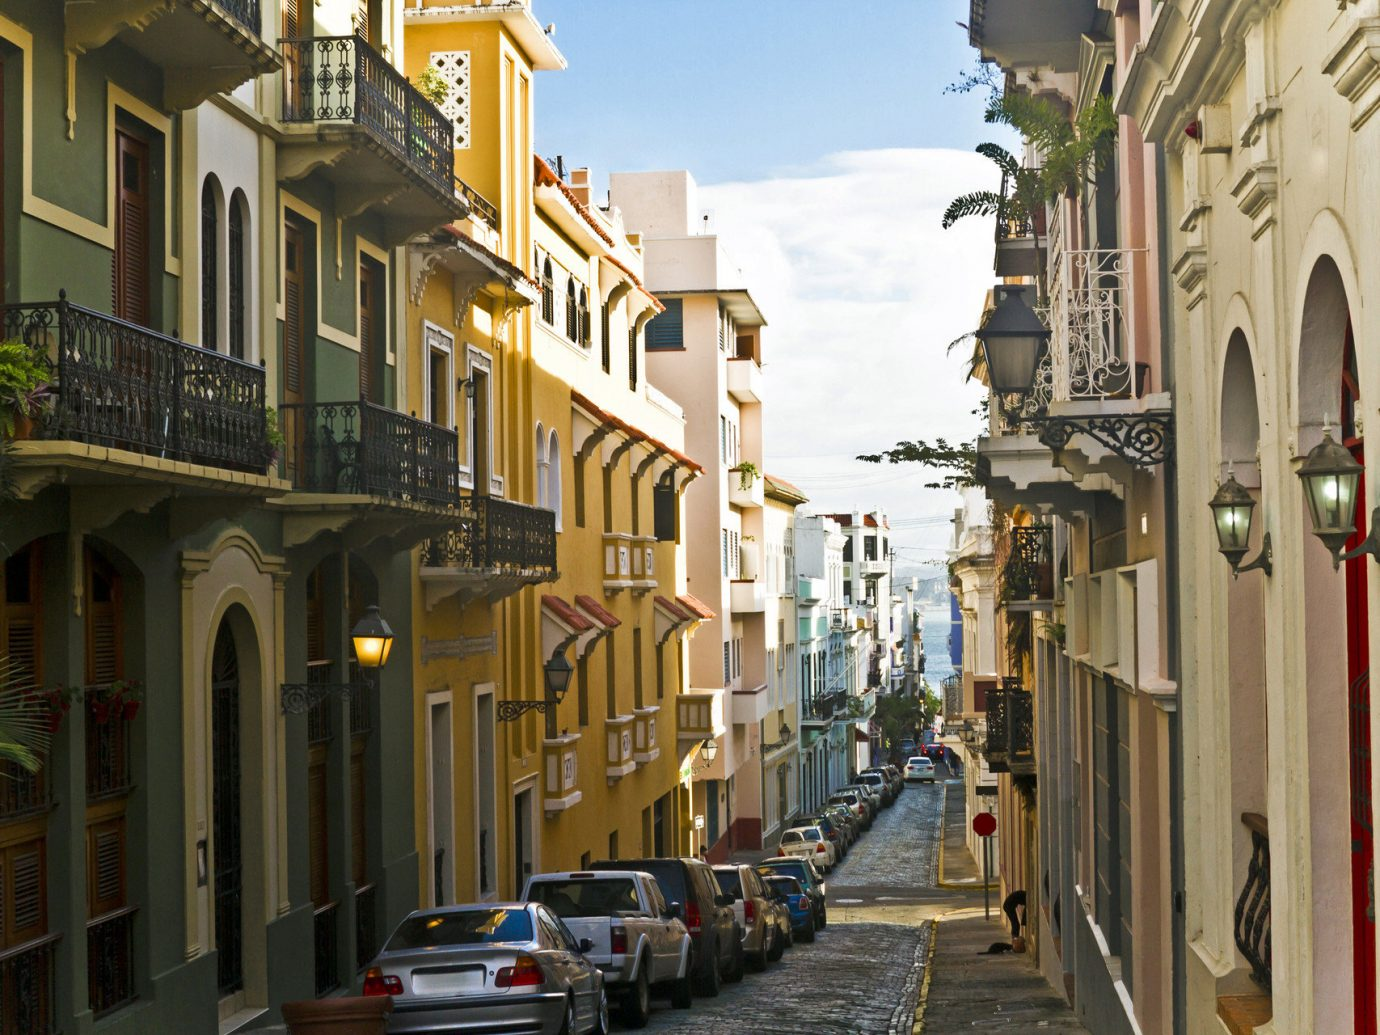 Romance Trip Ideas building outdoor road Town street neighbourhood alley lane City way human settlement Architecture residential area tourism infrastructure Downtown facade sidewalk cityscape waterway